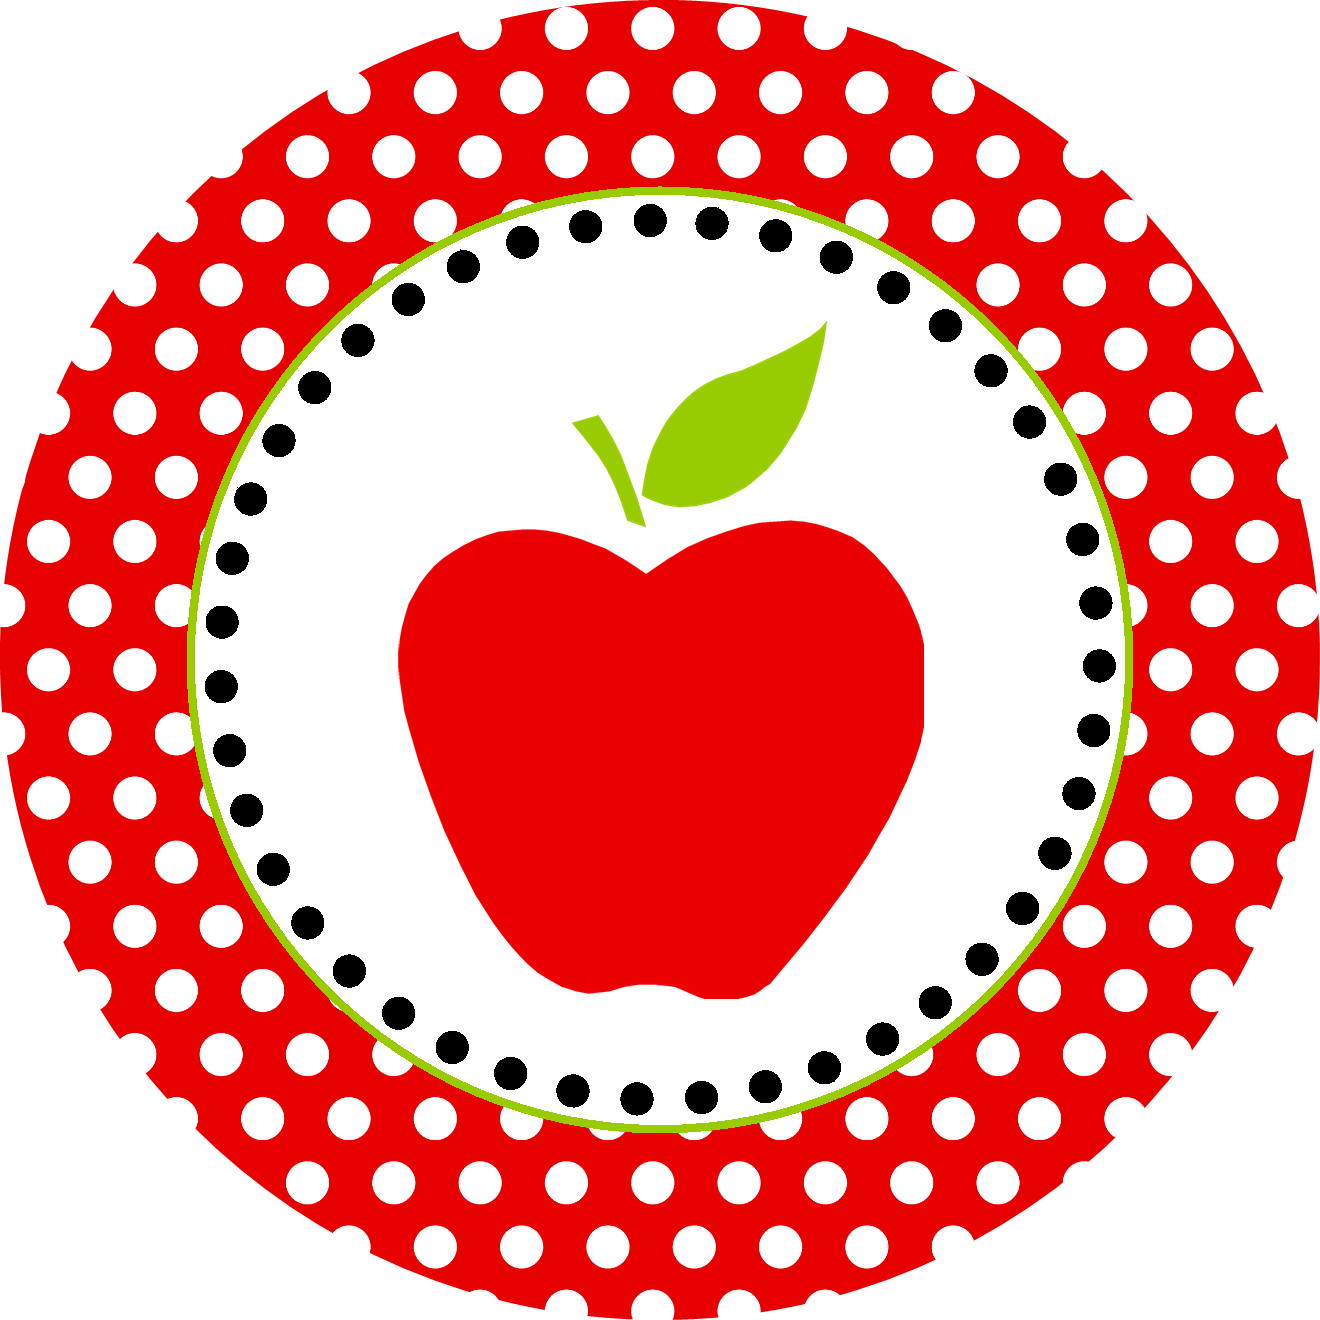 Back to school apple clipart graphic free Teacher Apple Clipart #1 | 111 Teacher Apple Clipart | Tiny Clipart graphic free